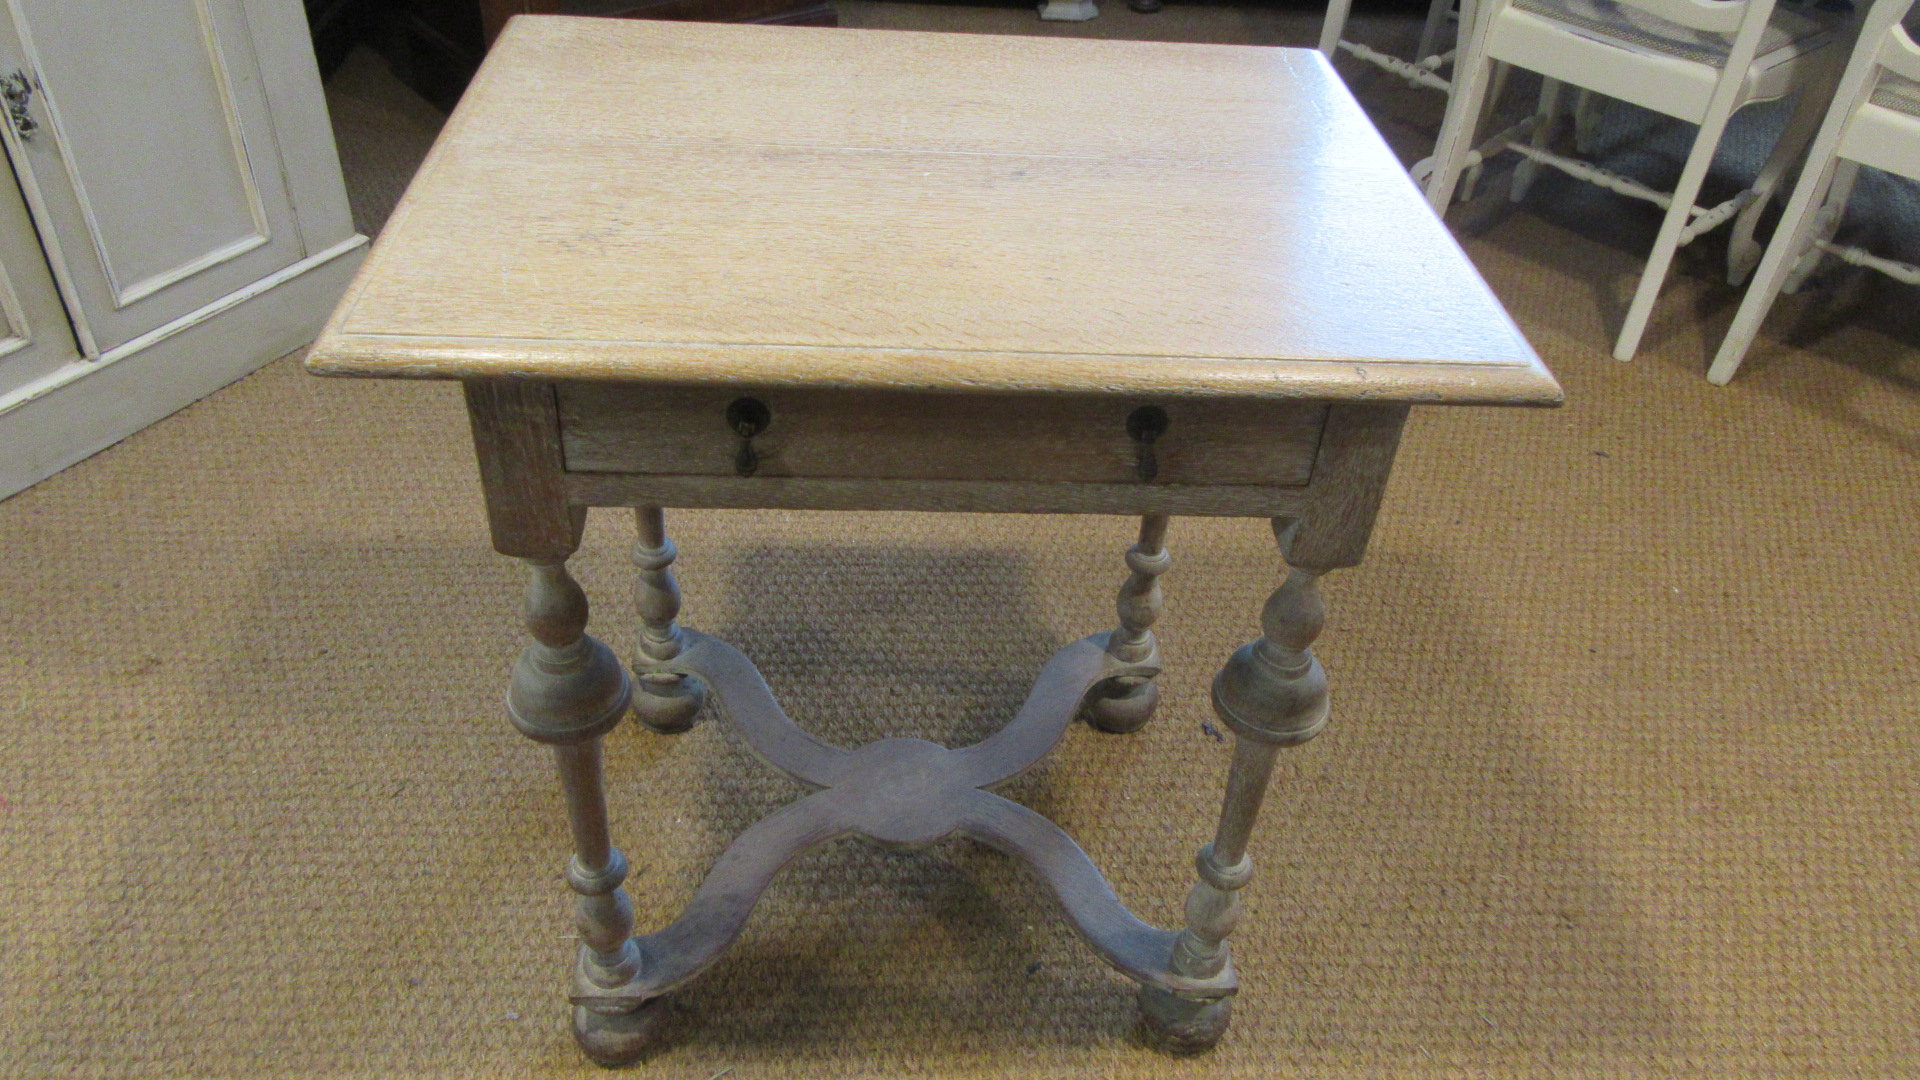 ANTIQUE LIMED OAK SIDE TABLE